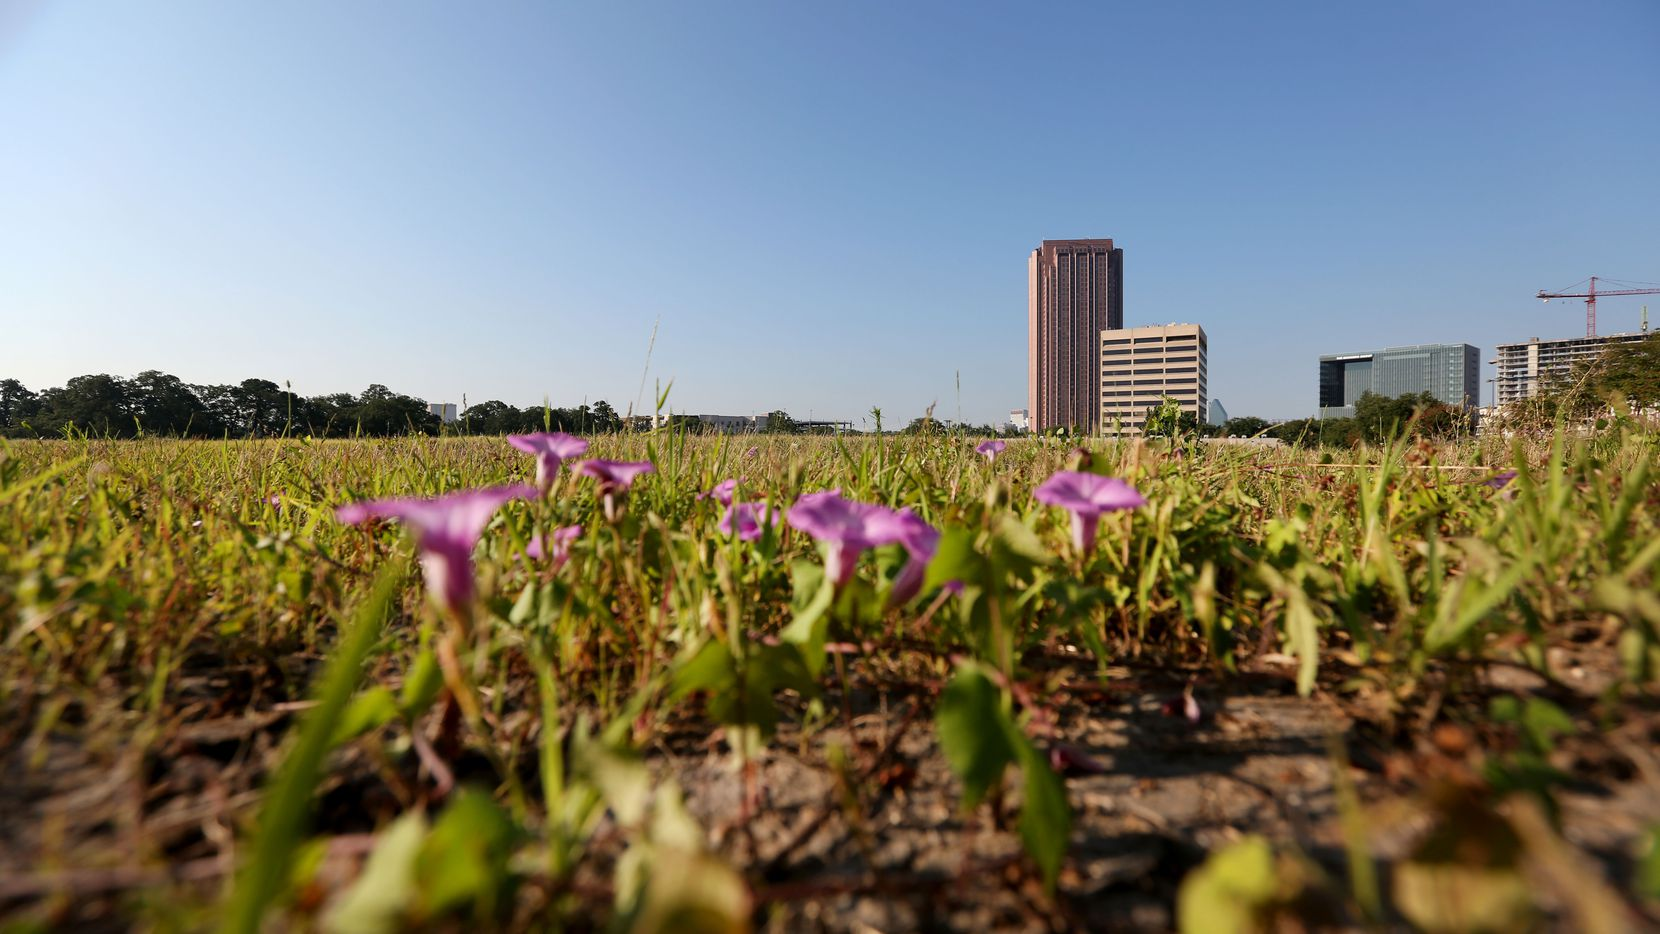 The high-profile development site on U.S. Highway 75 has been vacant for more than two years.